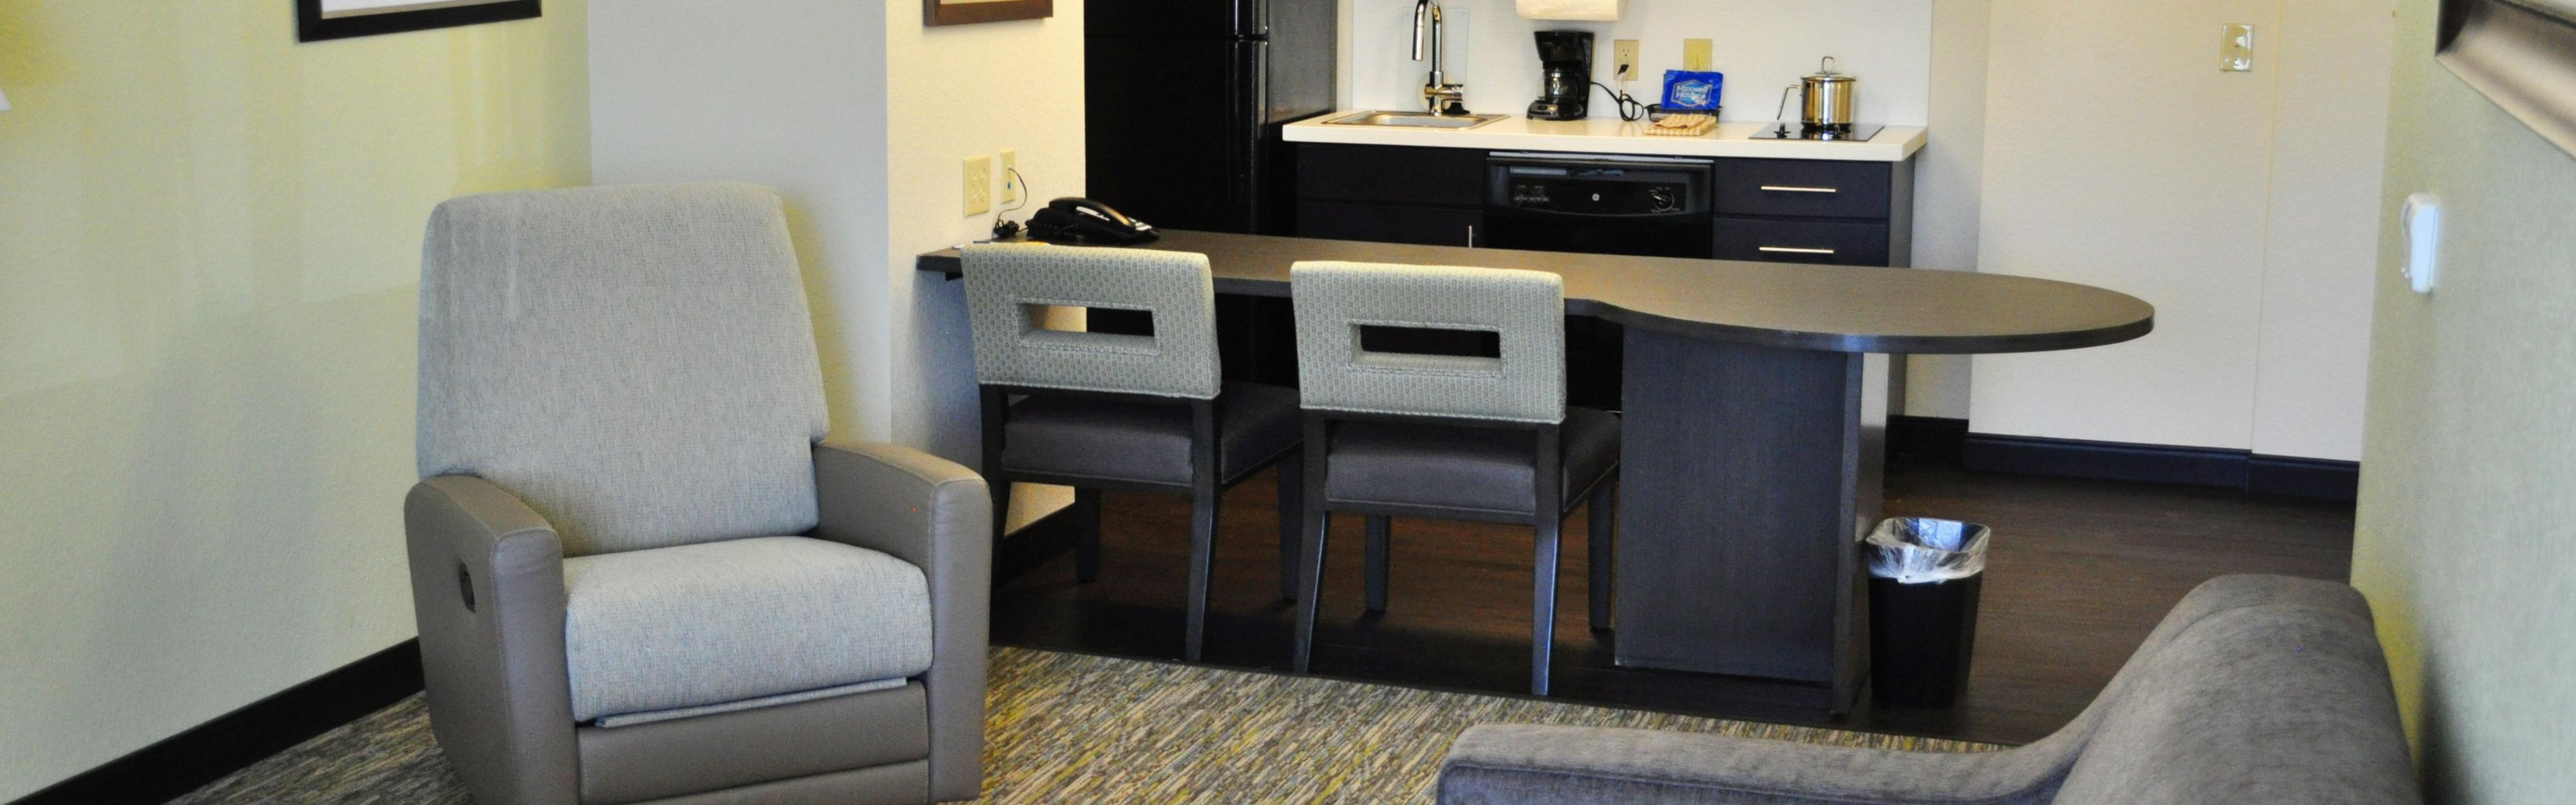 Candlewood Suites Bay City image 1